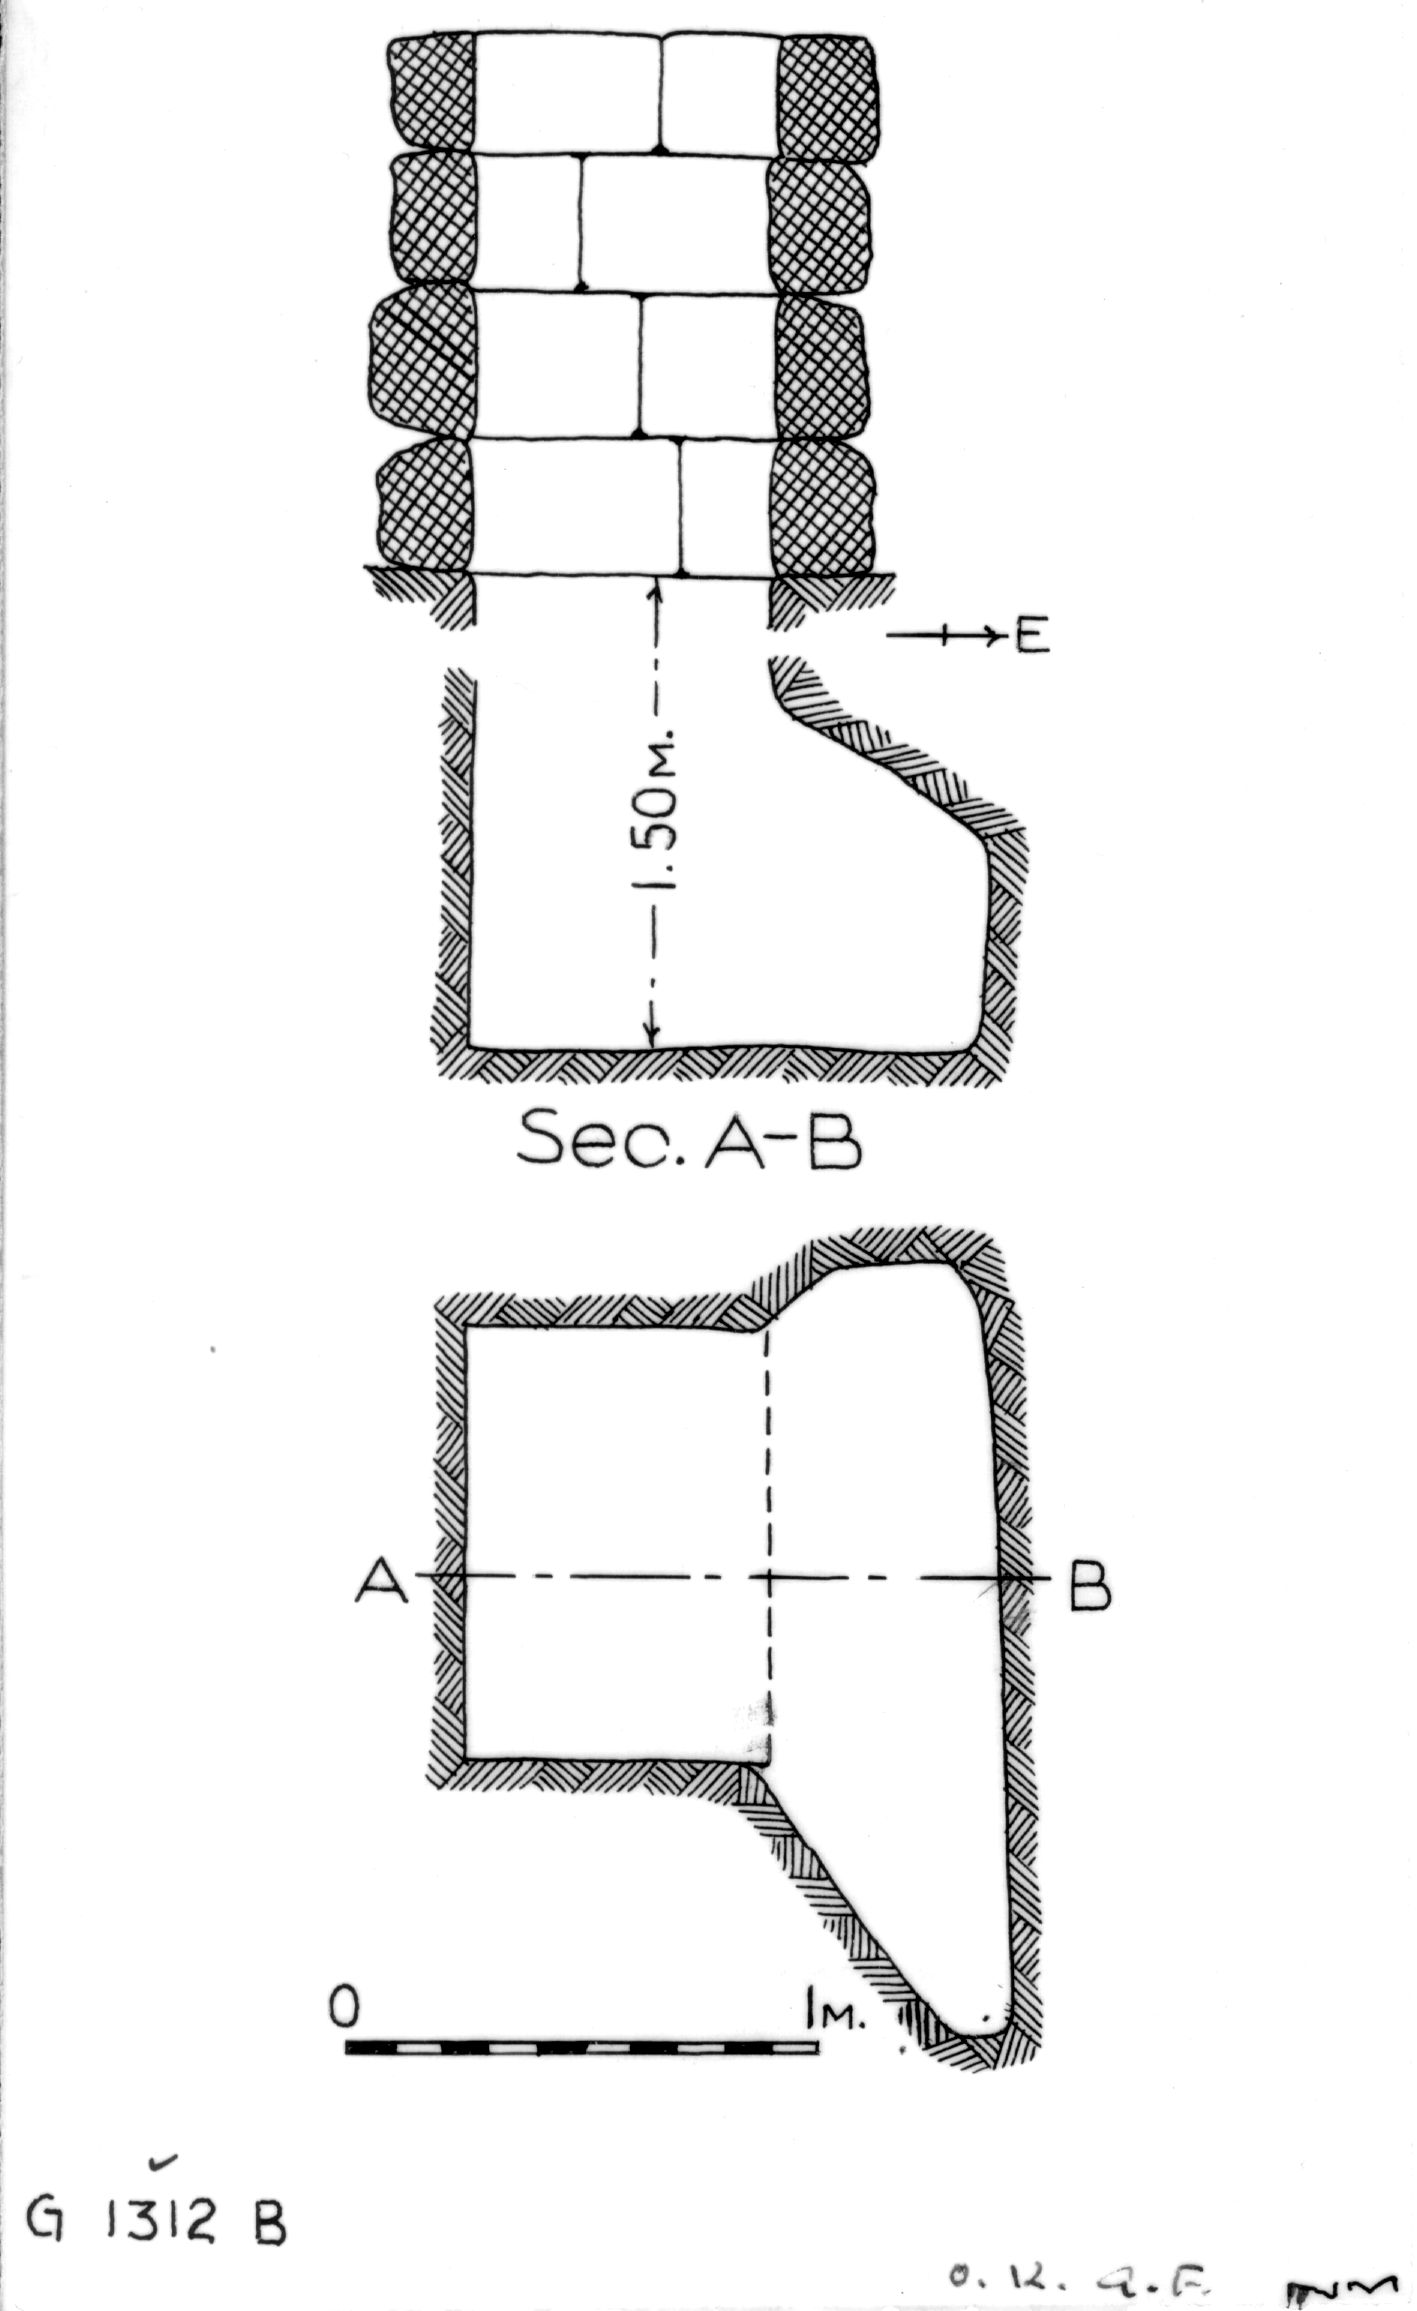 Maps and plans: G 1312, Shaft B